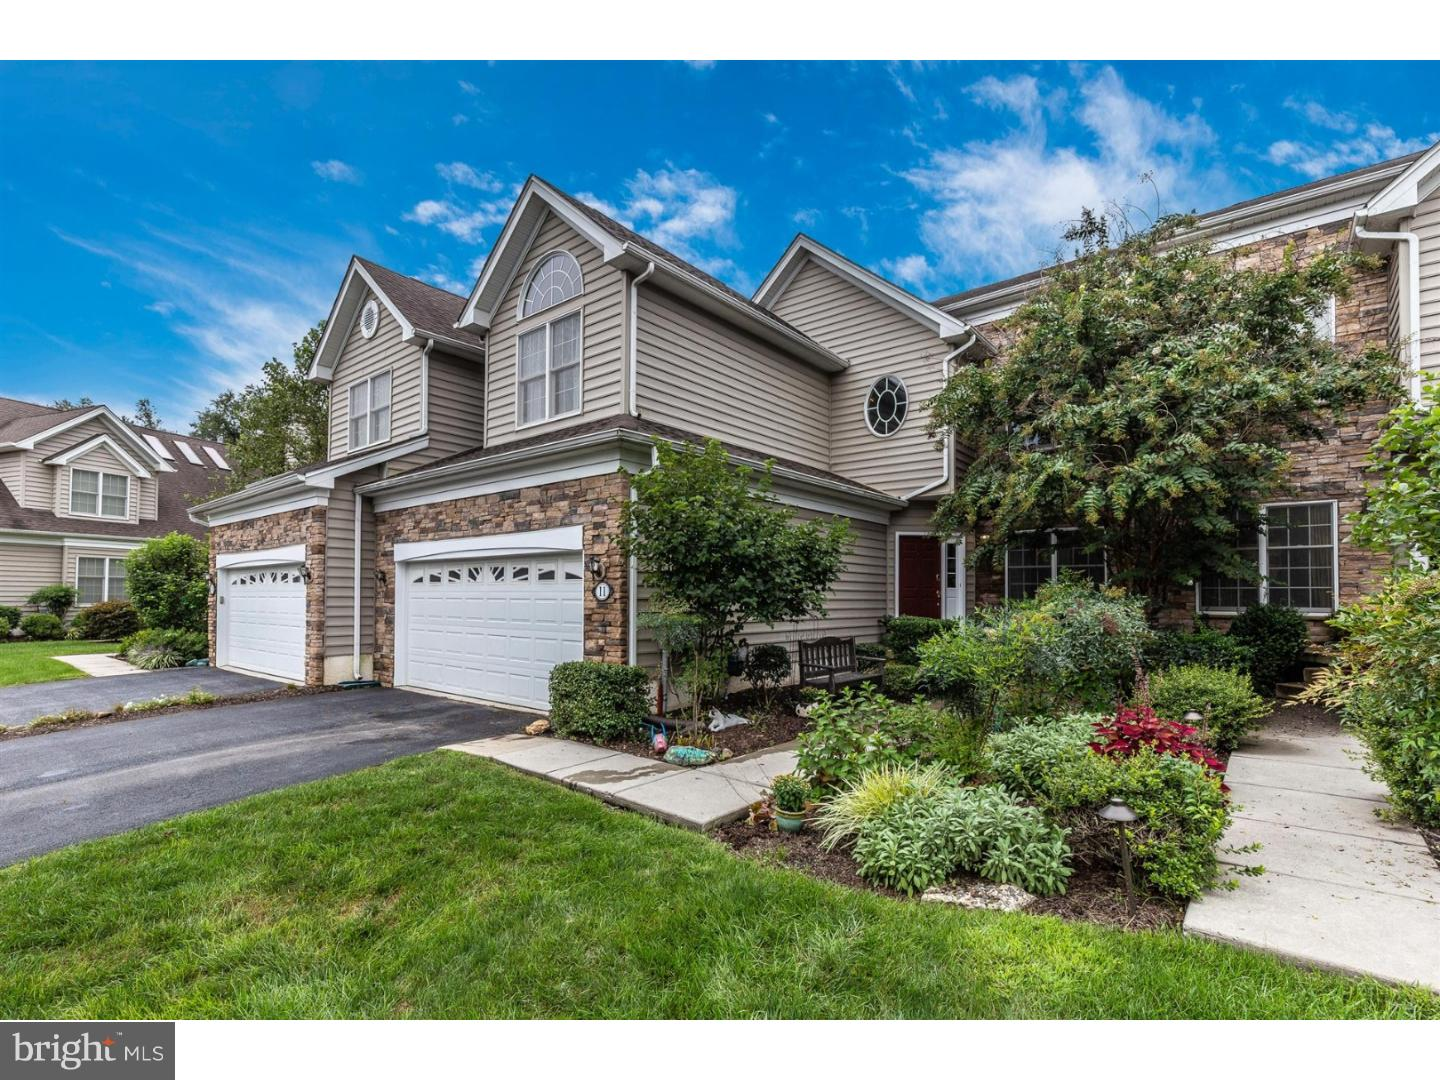 11 Sloan Road West Chester, PA 19382